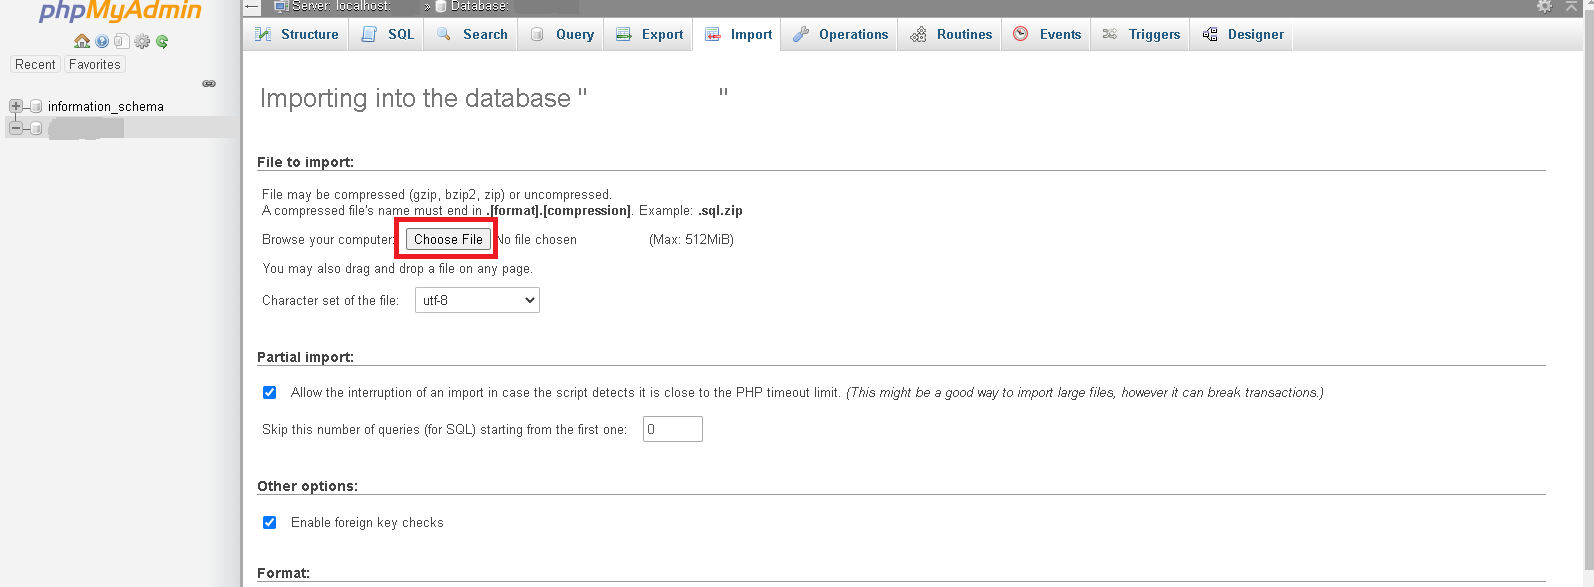 HOW TO IMPORT YOUR DATABASE THROUGH THE CPANEL